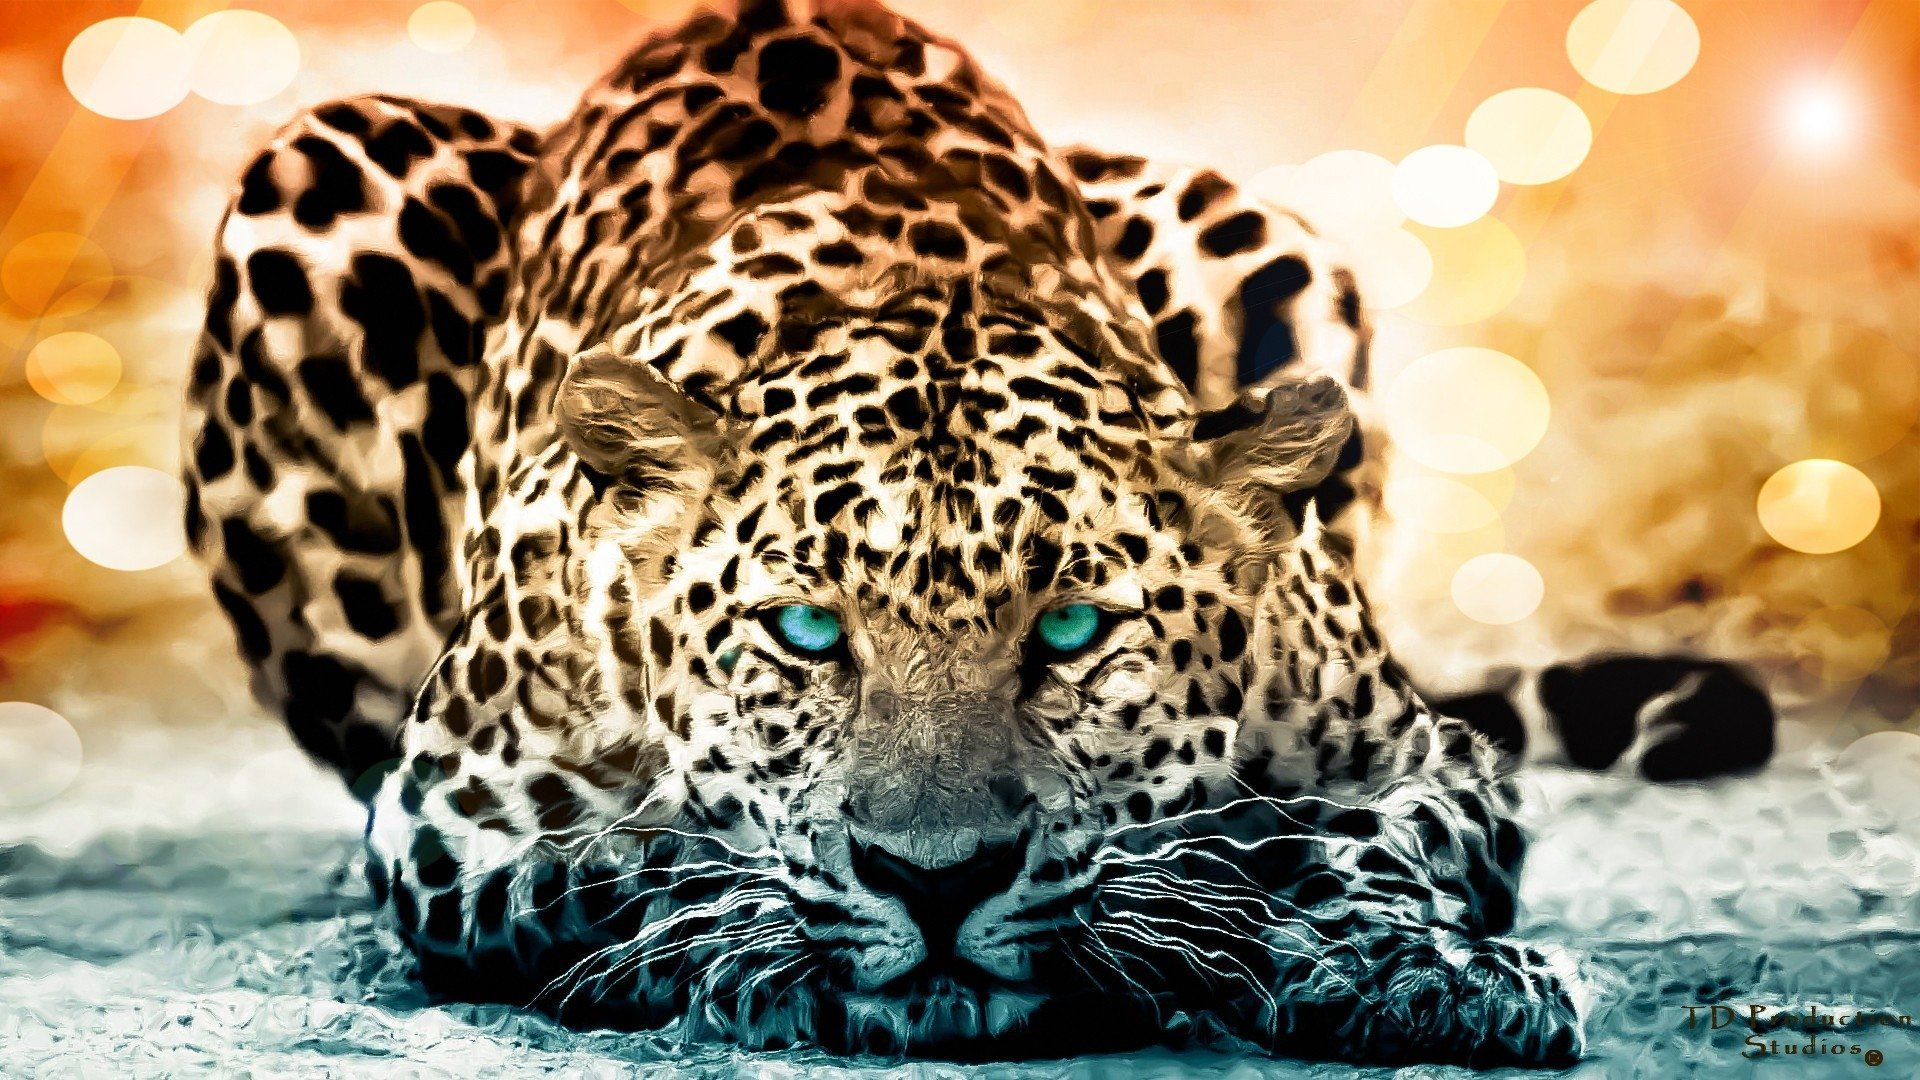 Jaguar wallpaper hd